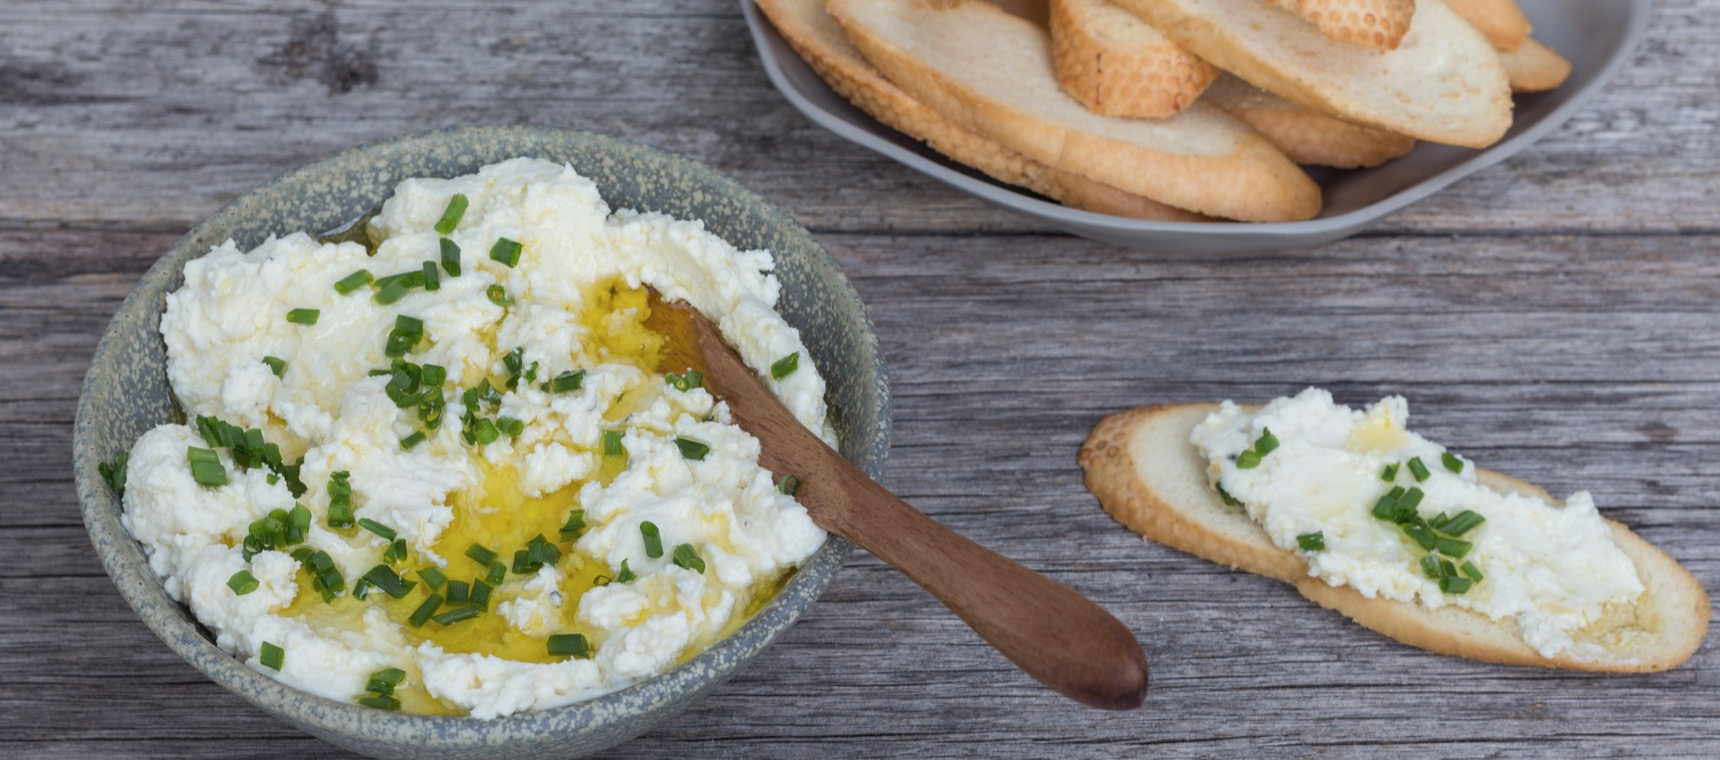 Lemon and Feta Spread with Crostini